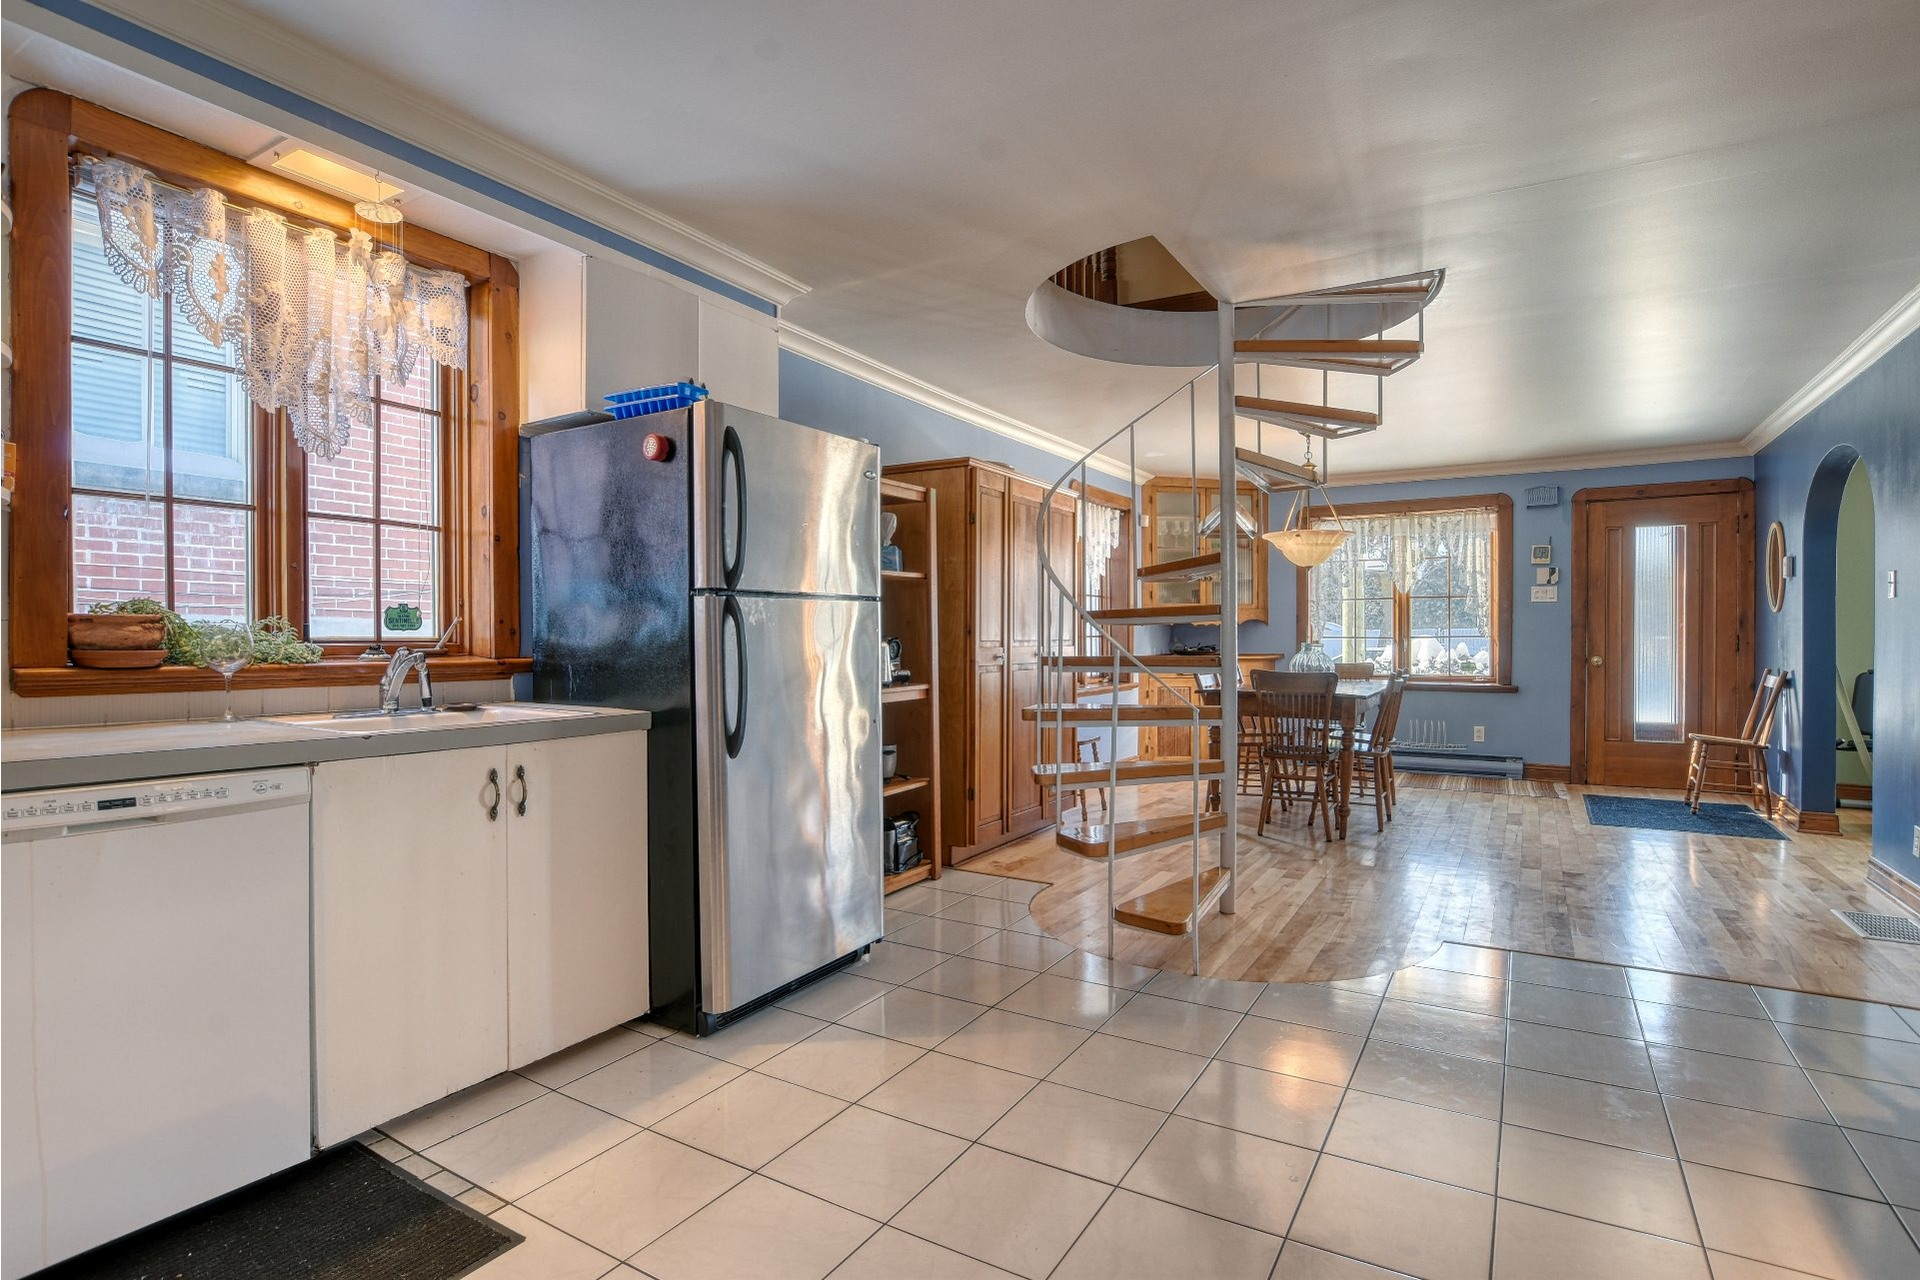 image 4 - House For sale Saint-Laurent Montréal  - 10 rooms